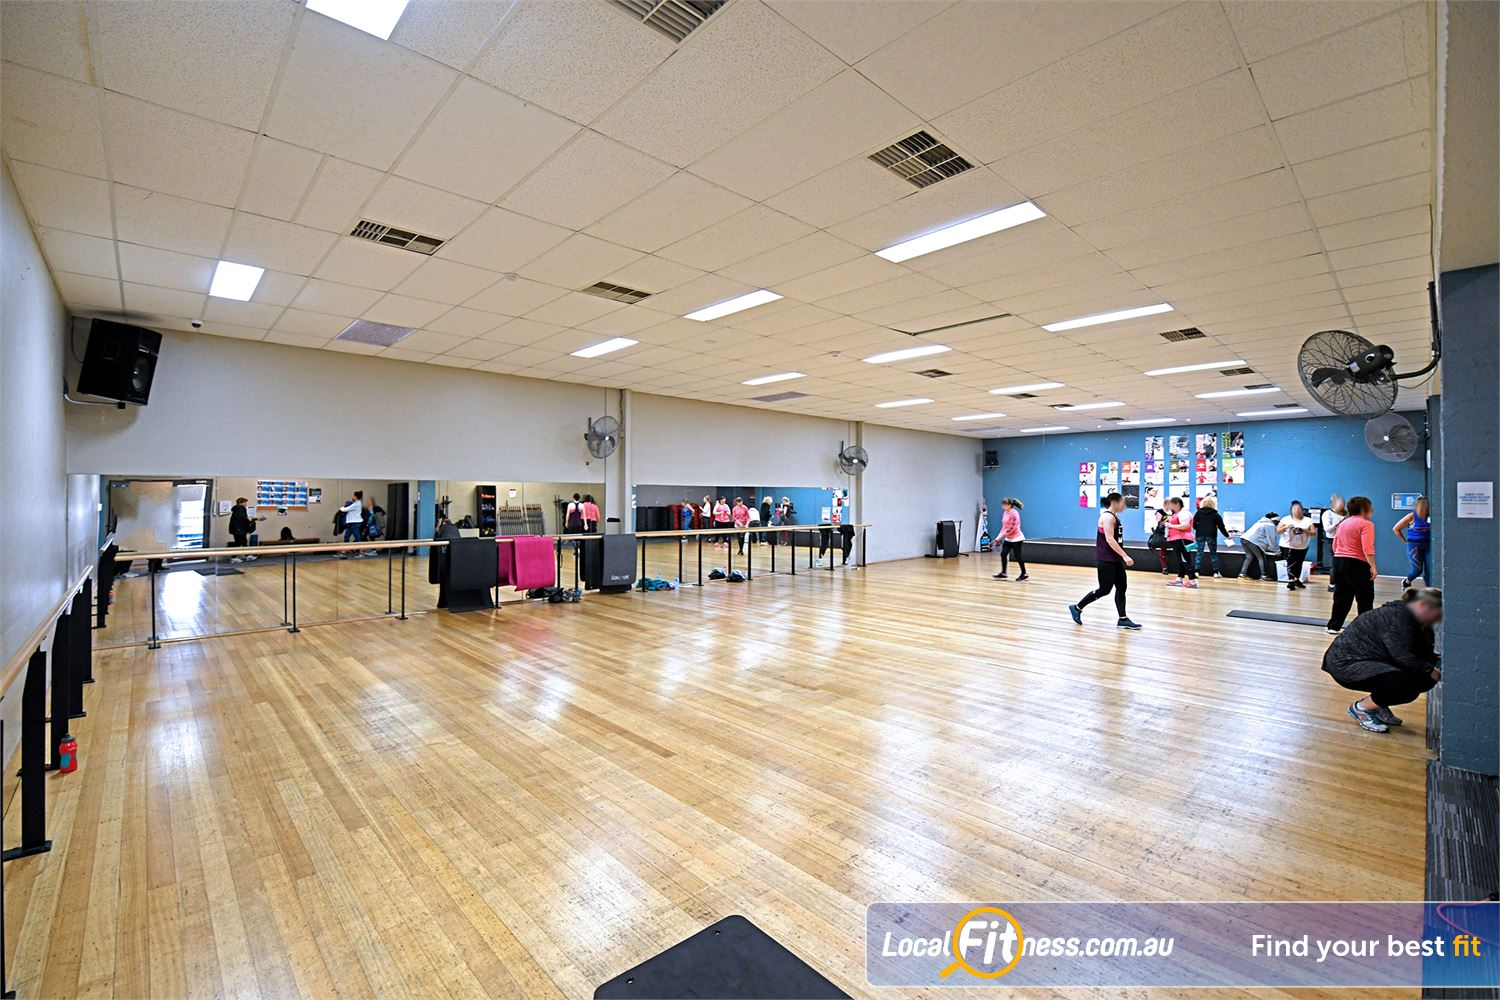 Goodlife Health Clubs Hoppers Crossing Heaps of classes inc. Hoppers Crossing Yoga, Pilates, Zumba and more.